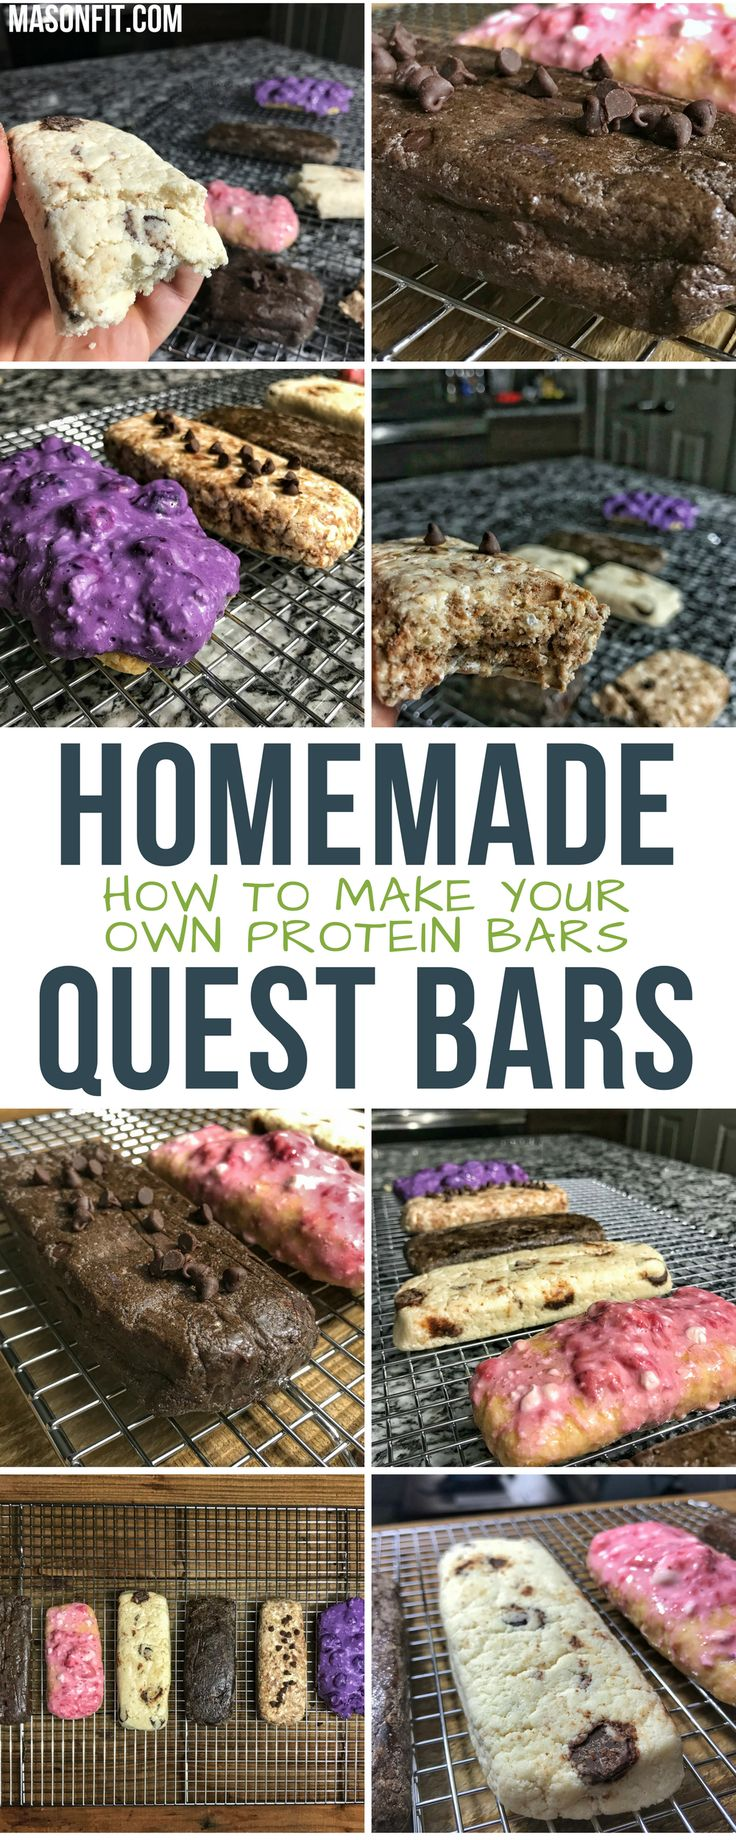 If you've ever wondered how to make your own protein bars that don't taste like rubber, you'll love these homemade quest protein bars. They're no bake and take less than 5 minutes to make. You can get creative with flavors, but you'll find double chocolate chip, chocolate chip cookie dough, blueberry and strawberry cheesecake, oatmeal chip, and honey graham here.